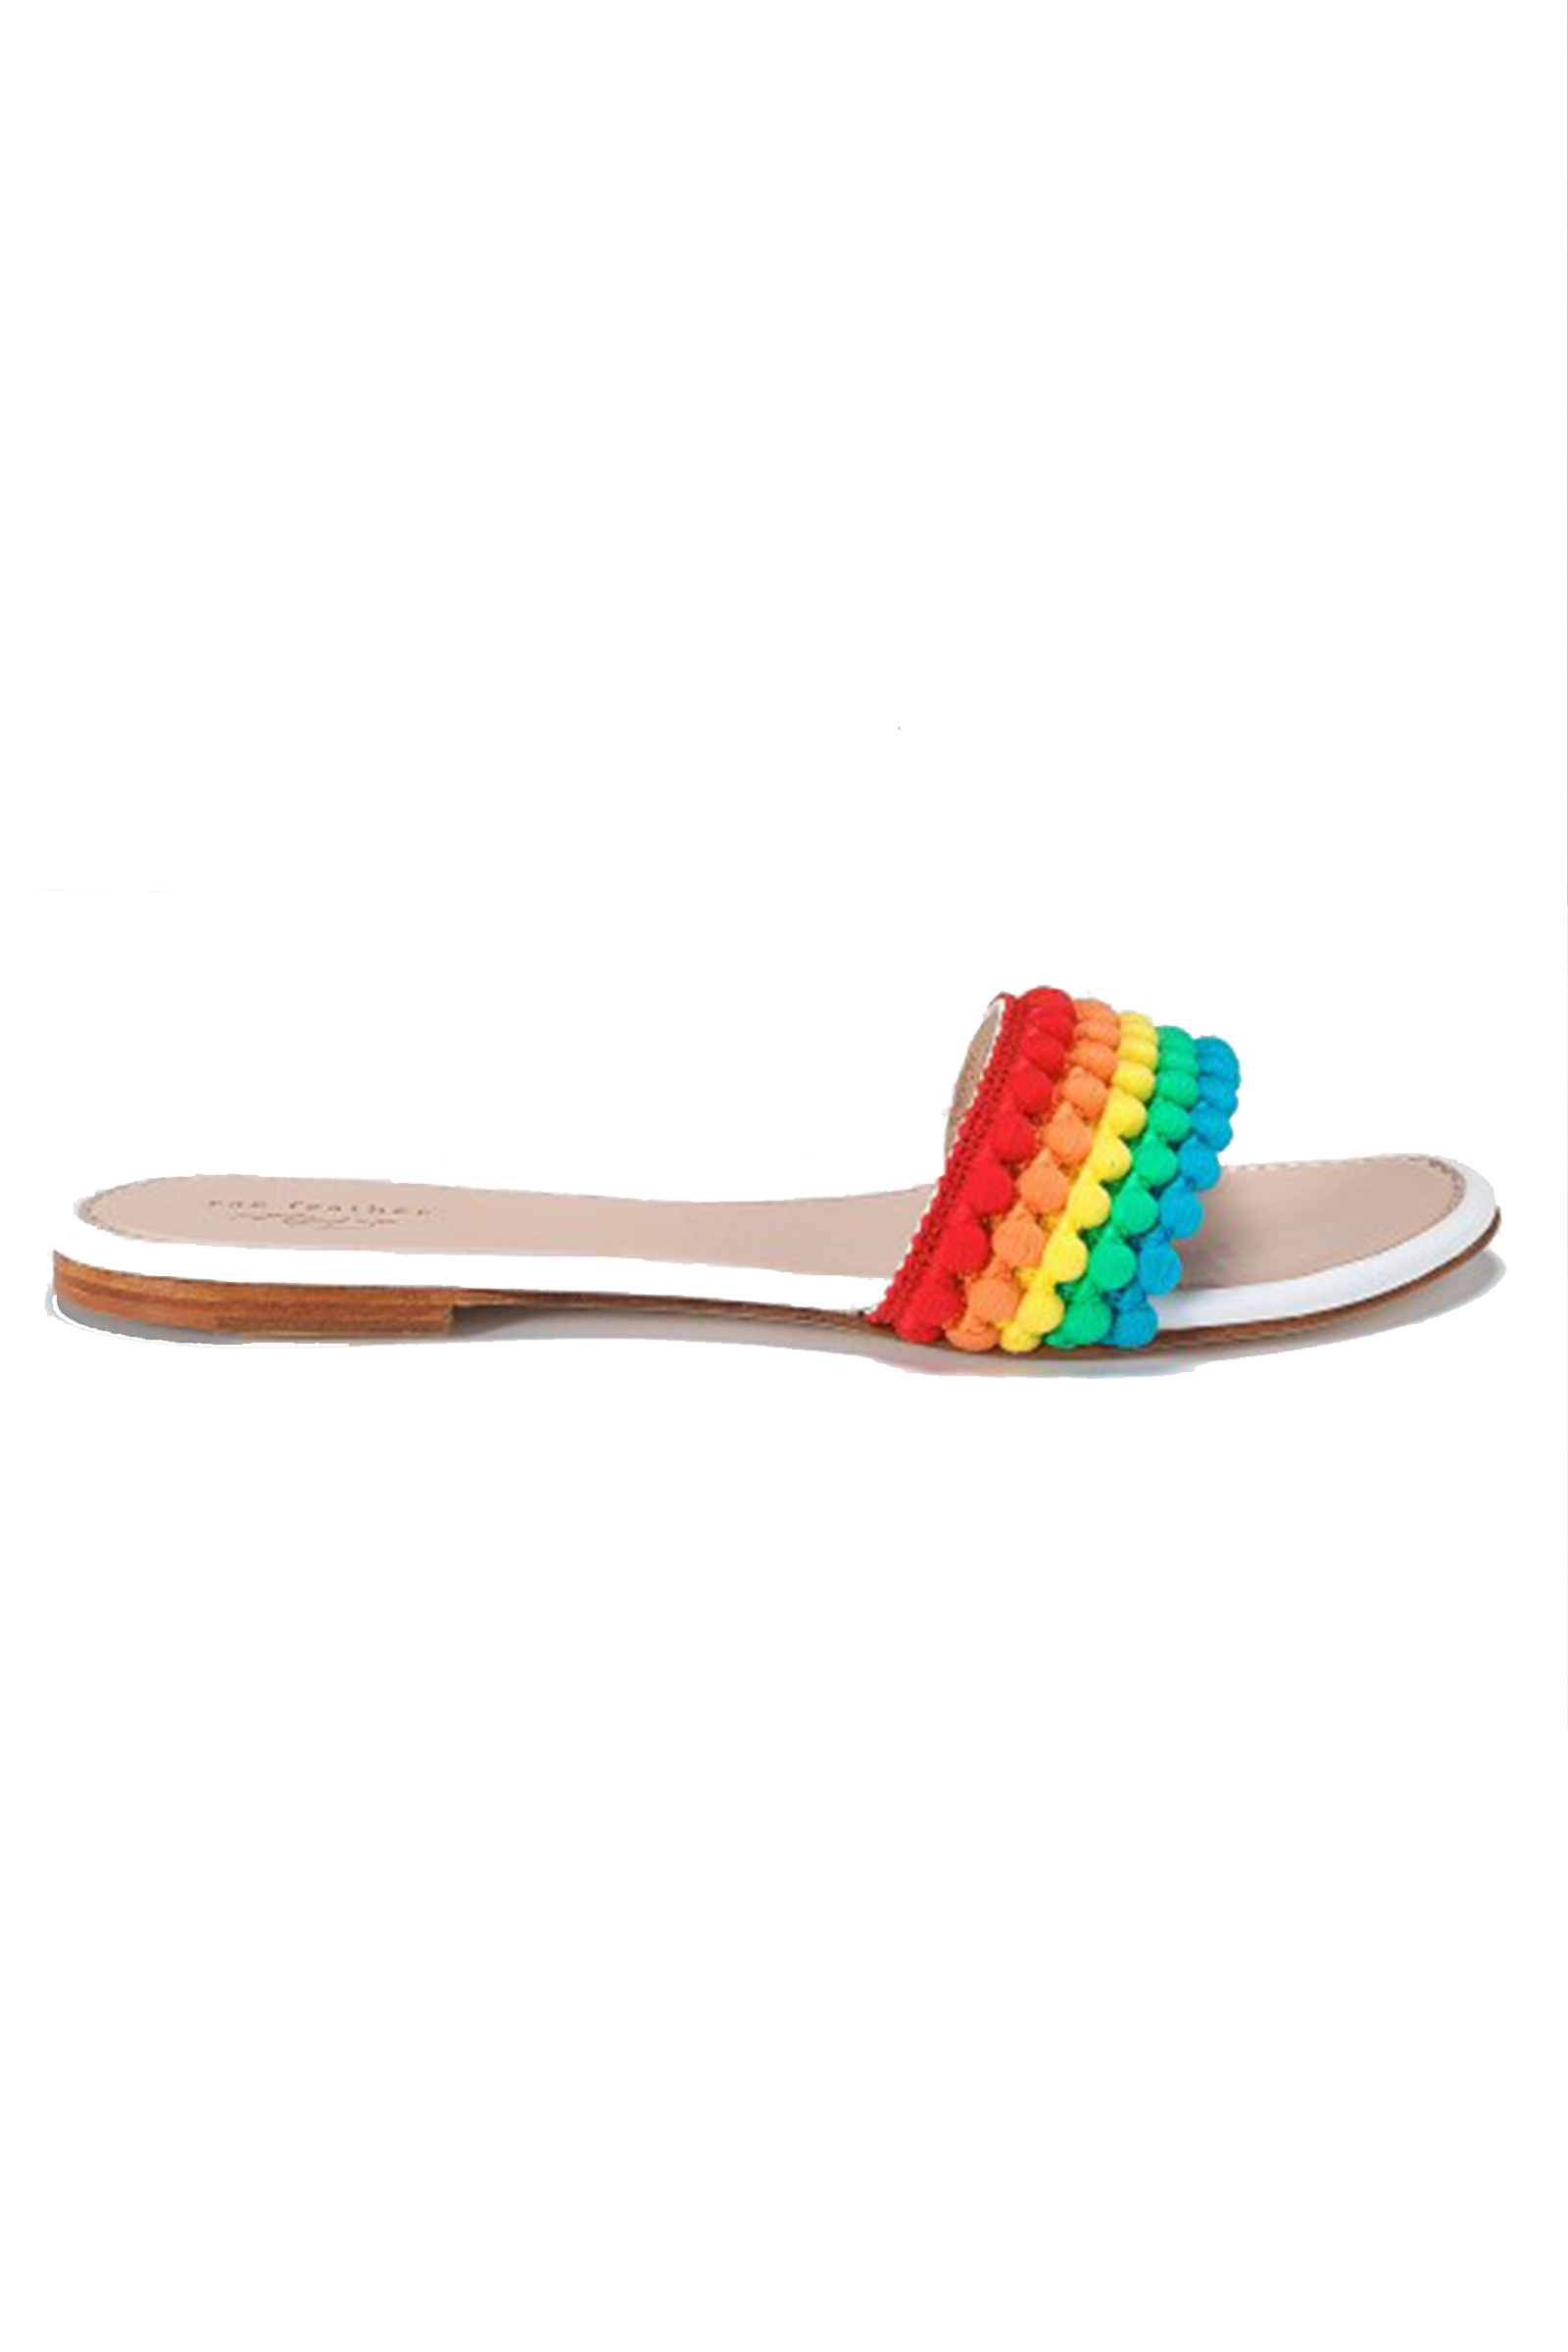 Click to Buy Rae-Feather-Pom-Pom-Sandals